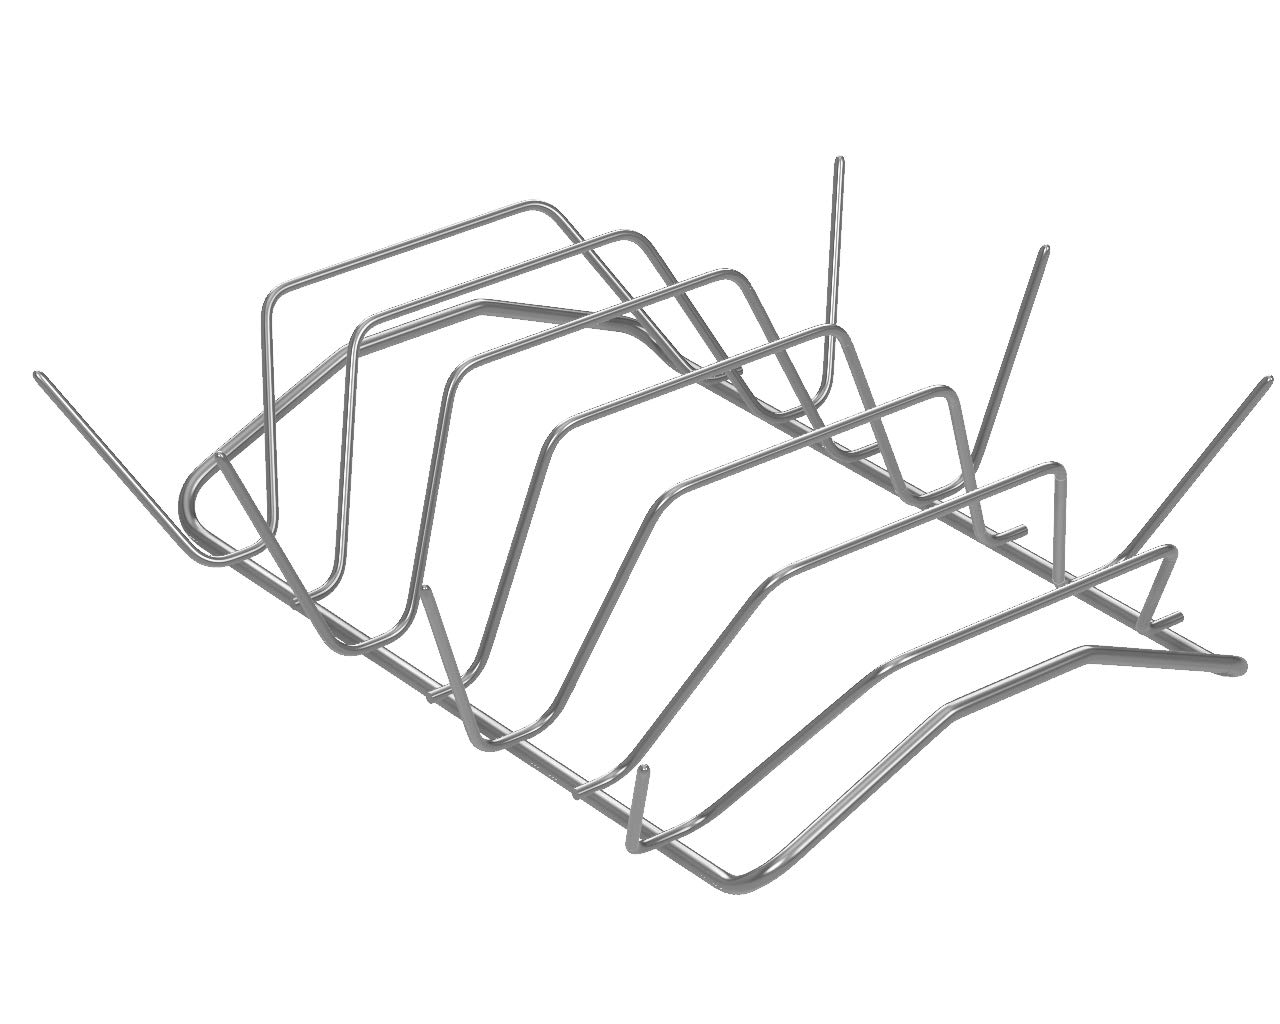 Proclivity Premium Rib Rack - Holds 6 Rib Racks for Grilling & Barbecuing - Stainless Steel